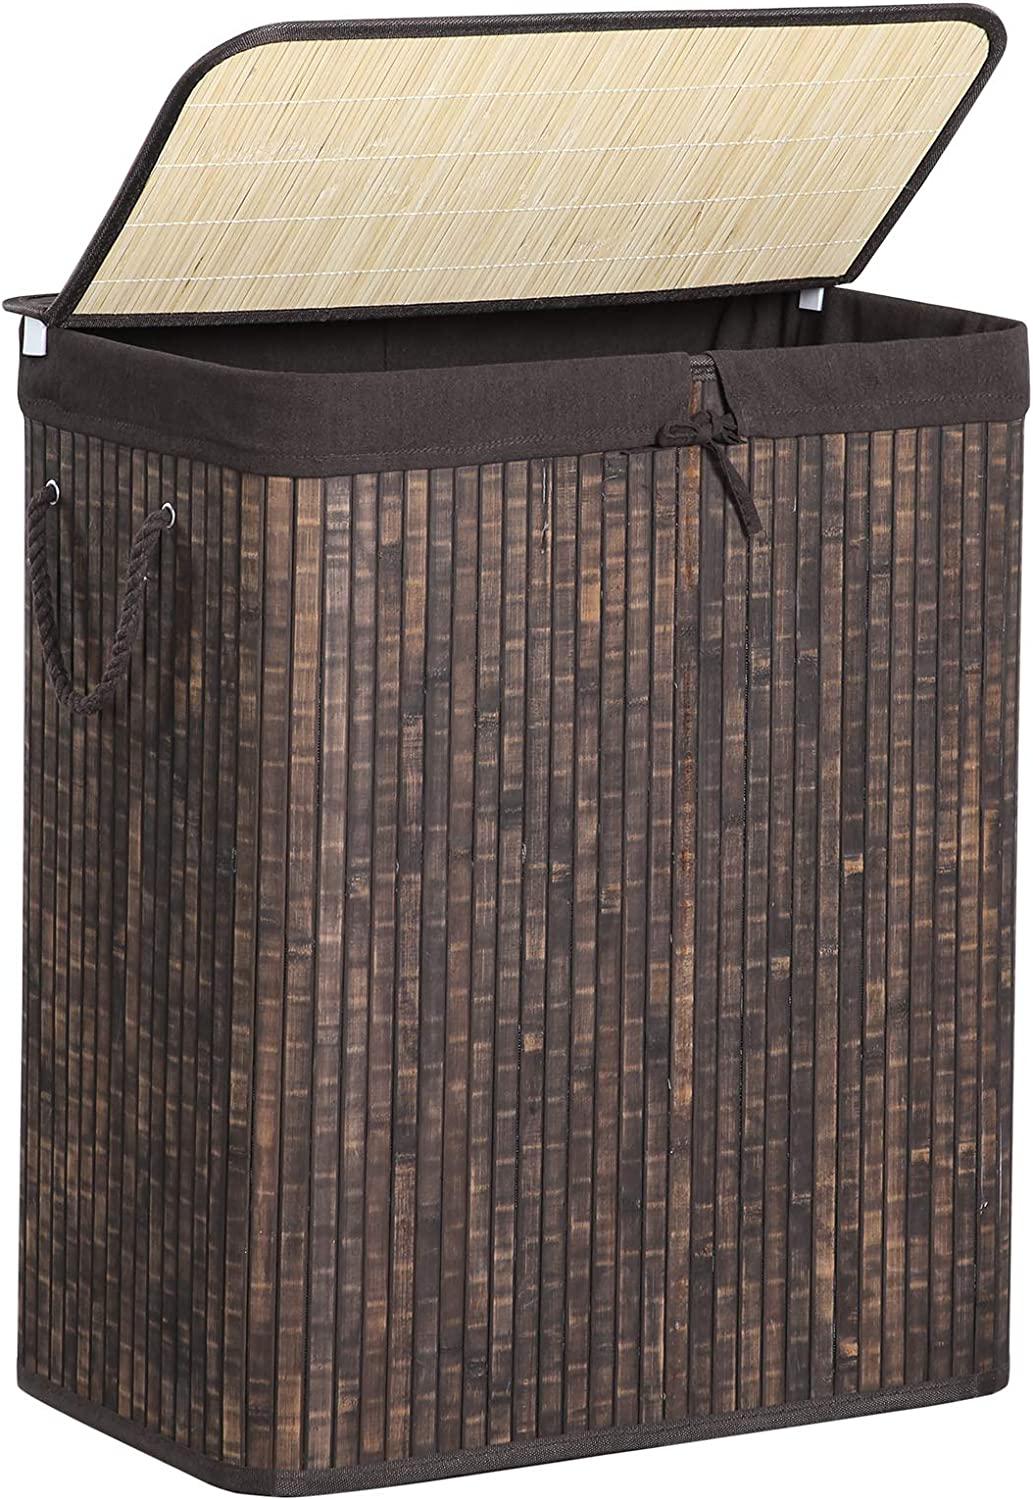 SONGMICS Divided Laundry Hamper with Removable Liner, Two-Section Laundry Basket Sorter with Lid and Handles, 26 Gal (100L), Rustic Brown ULCB64WN